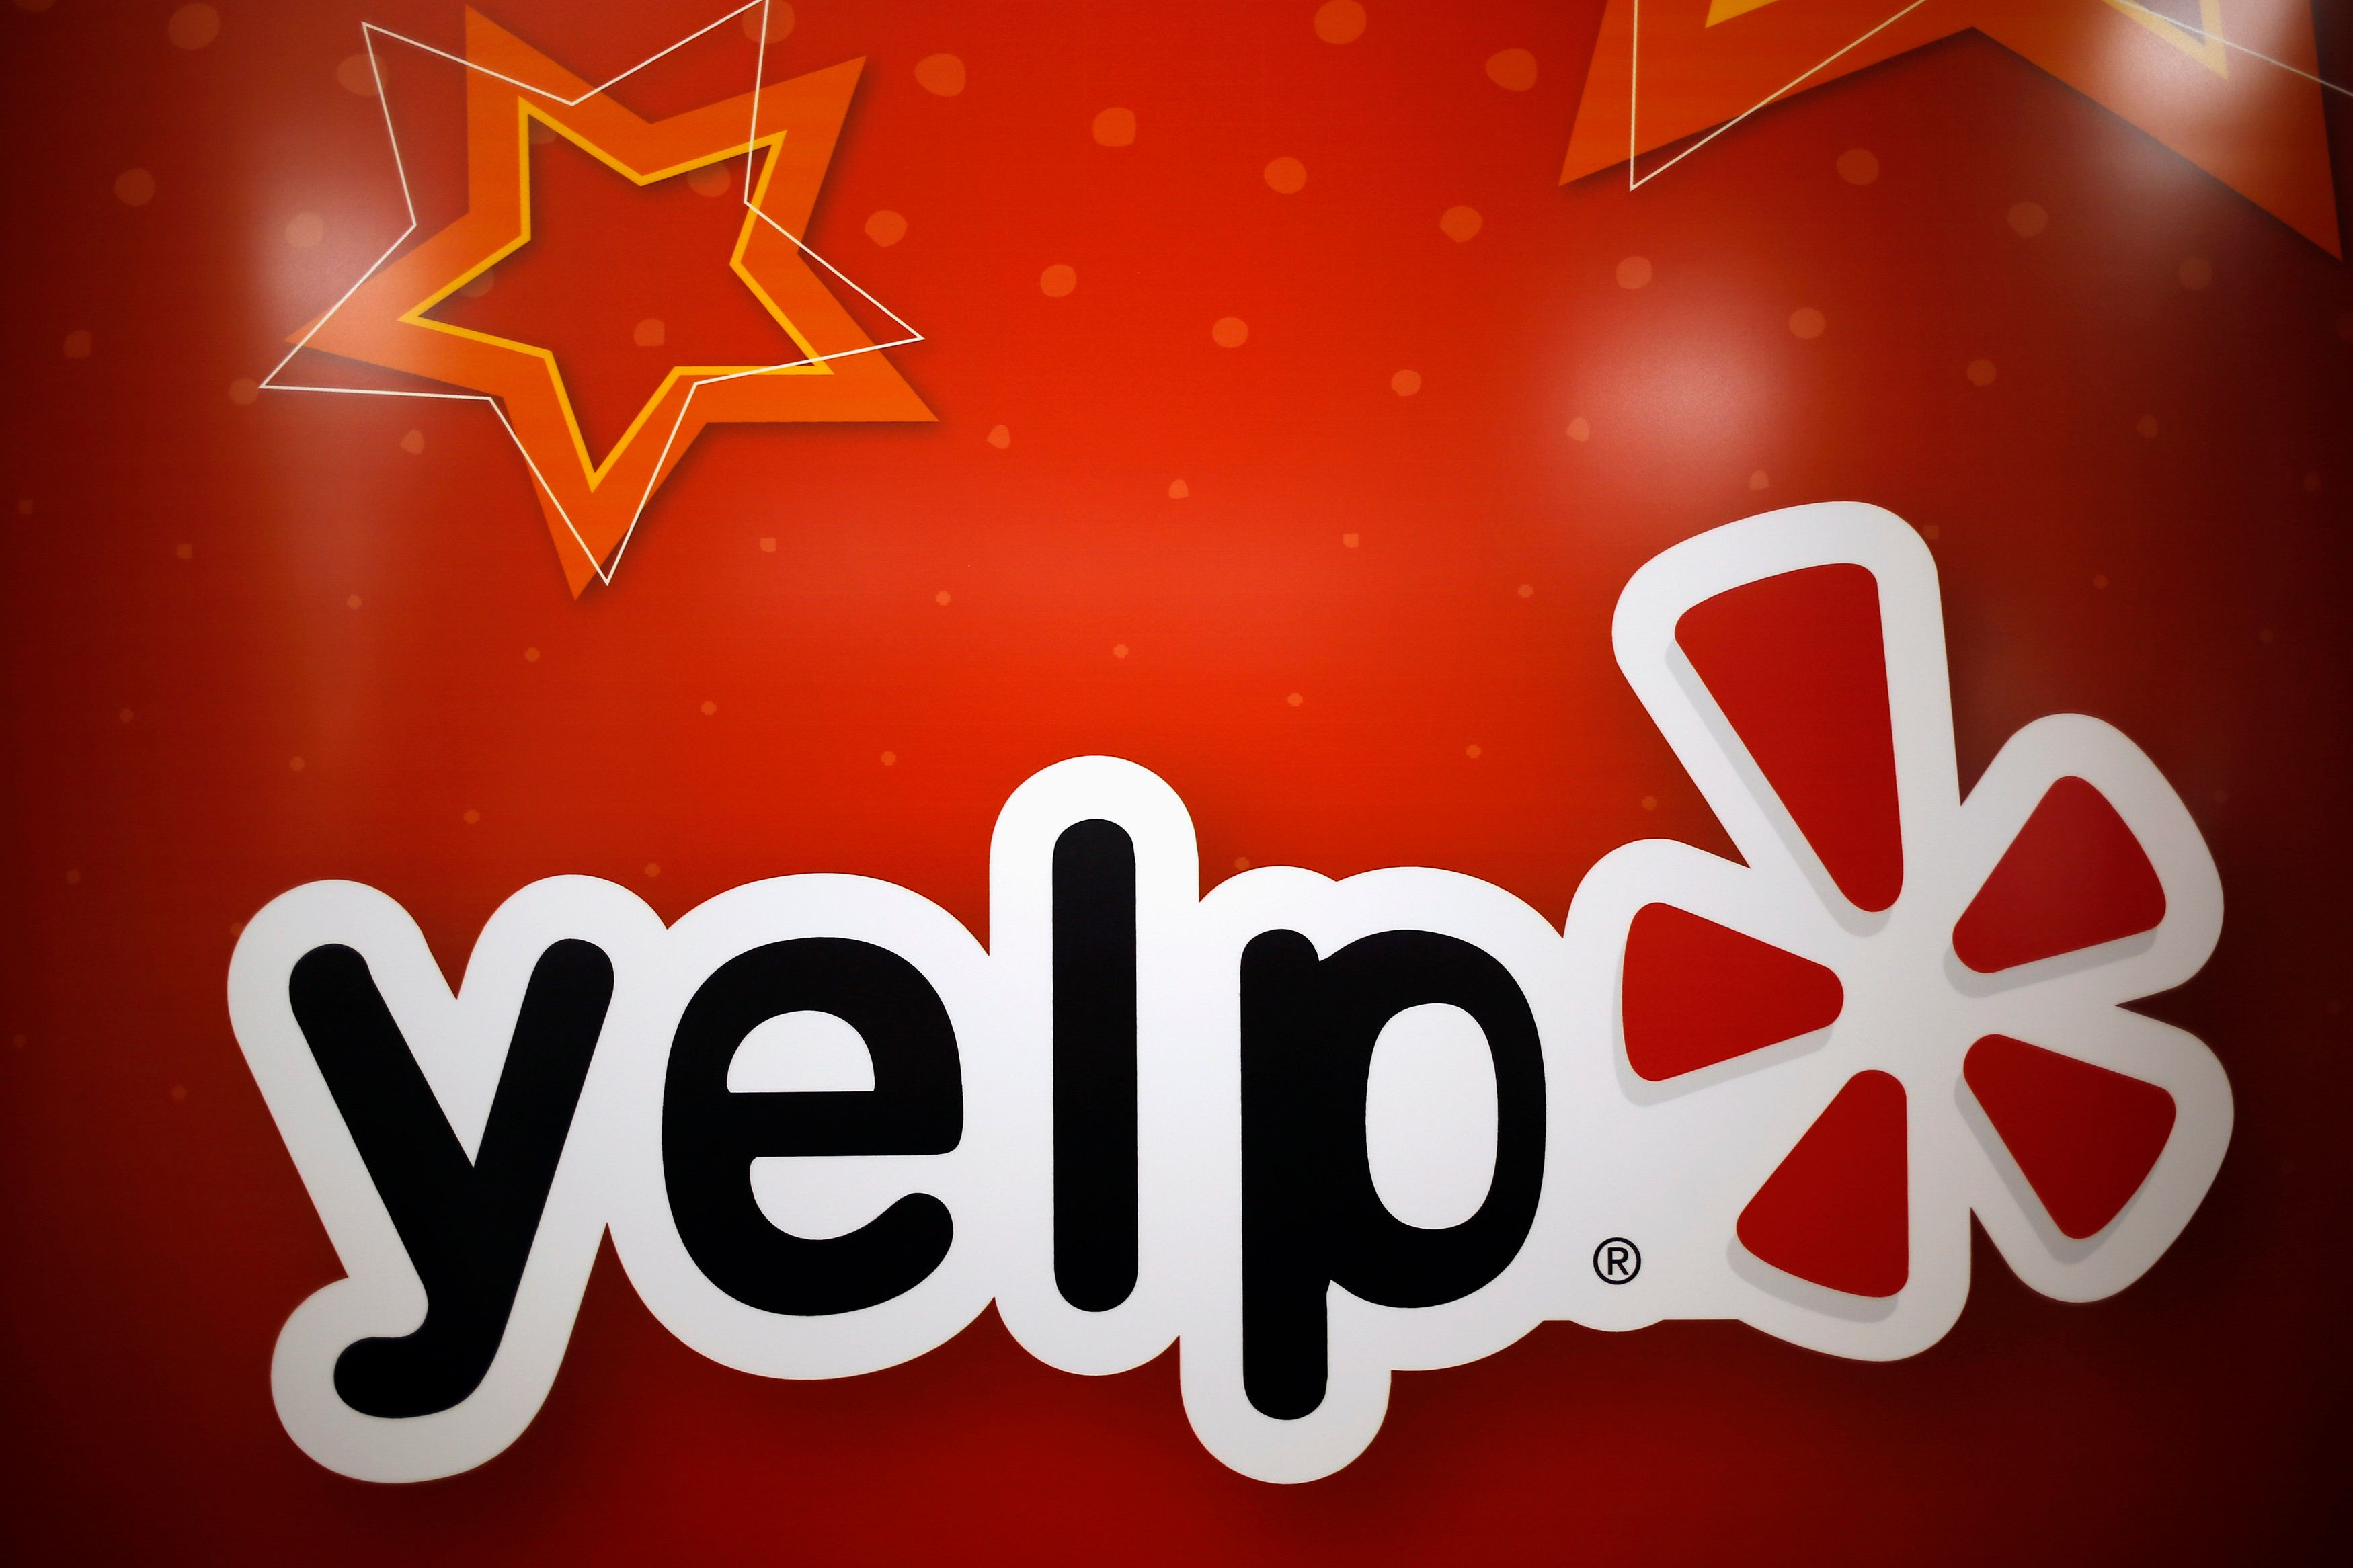 Yelp CEO Jeremy Stoppelman has agreed that the cost of living is too expensive in the Bay Area.